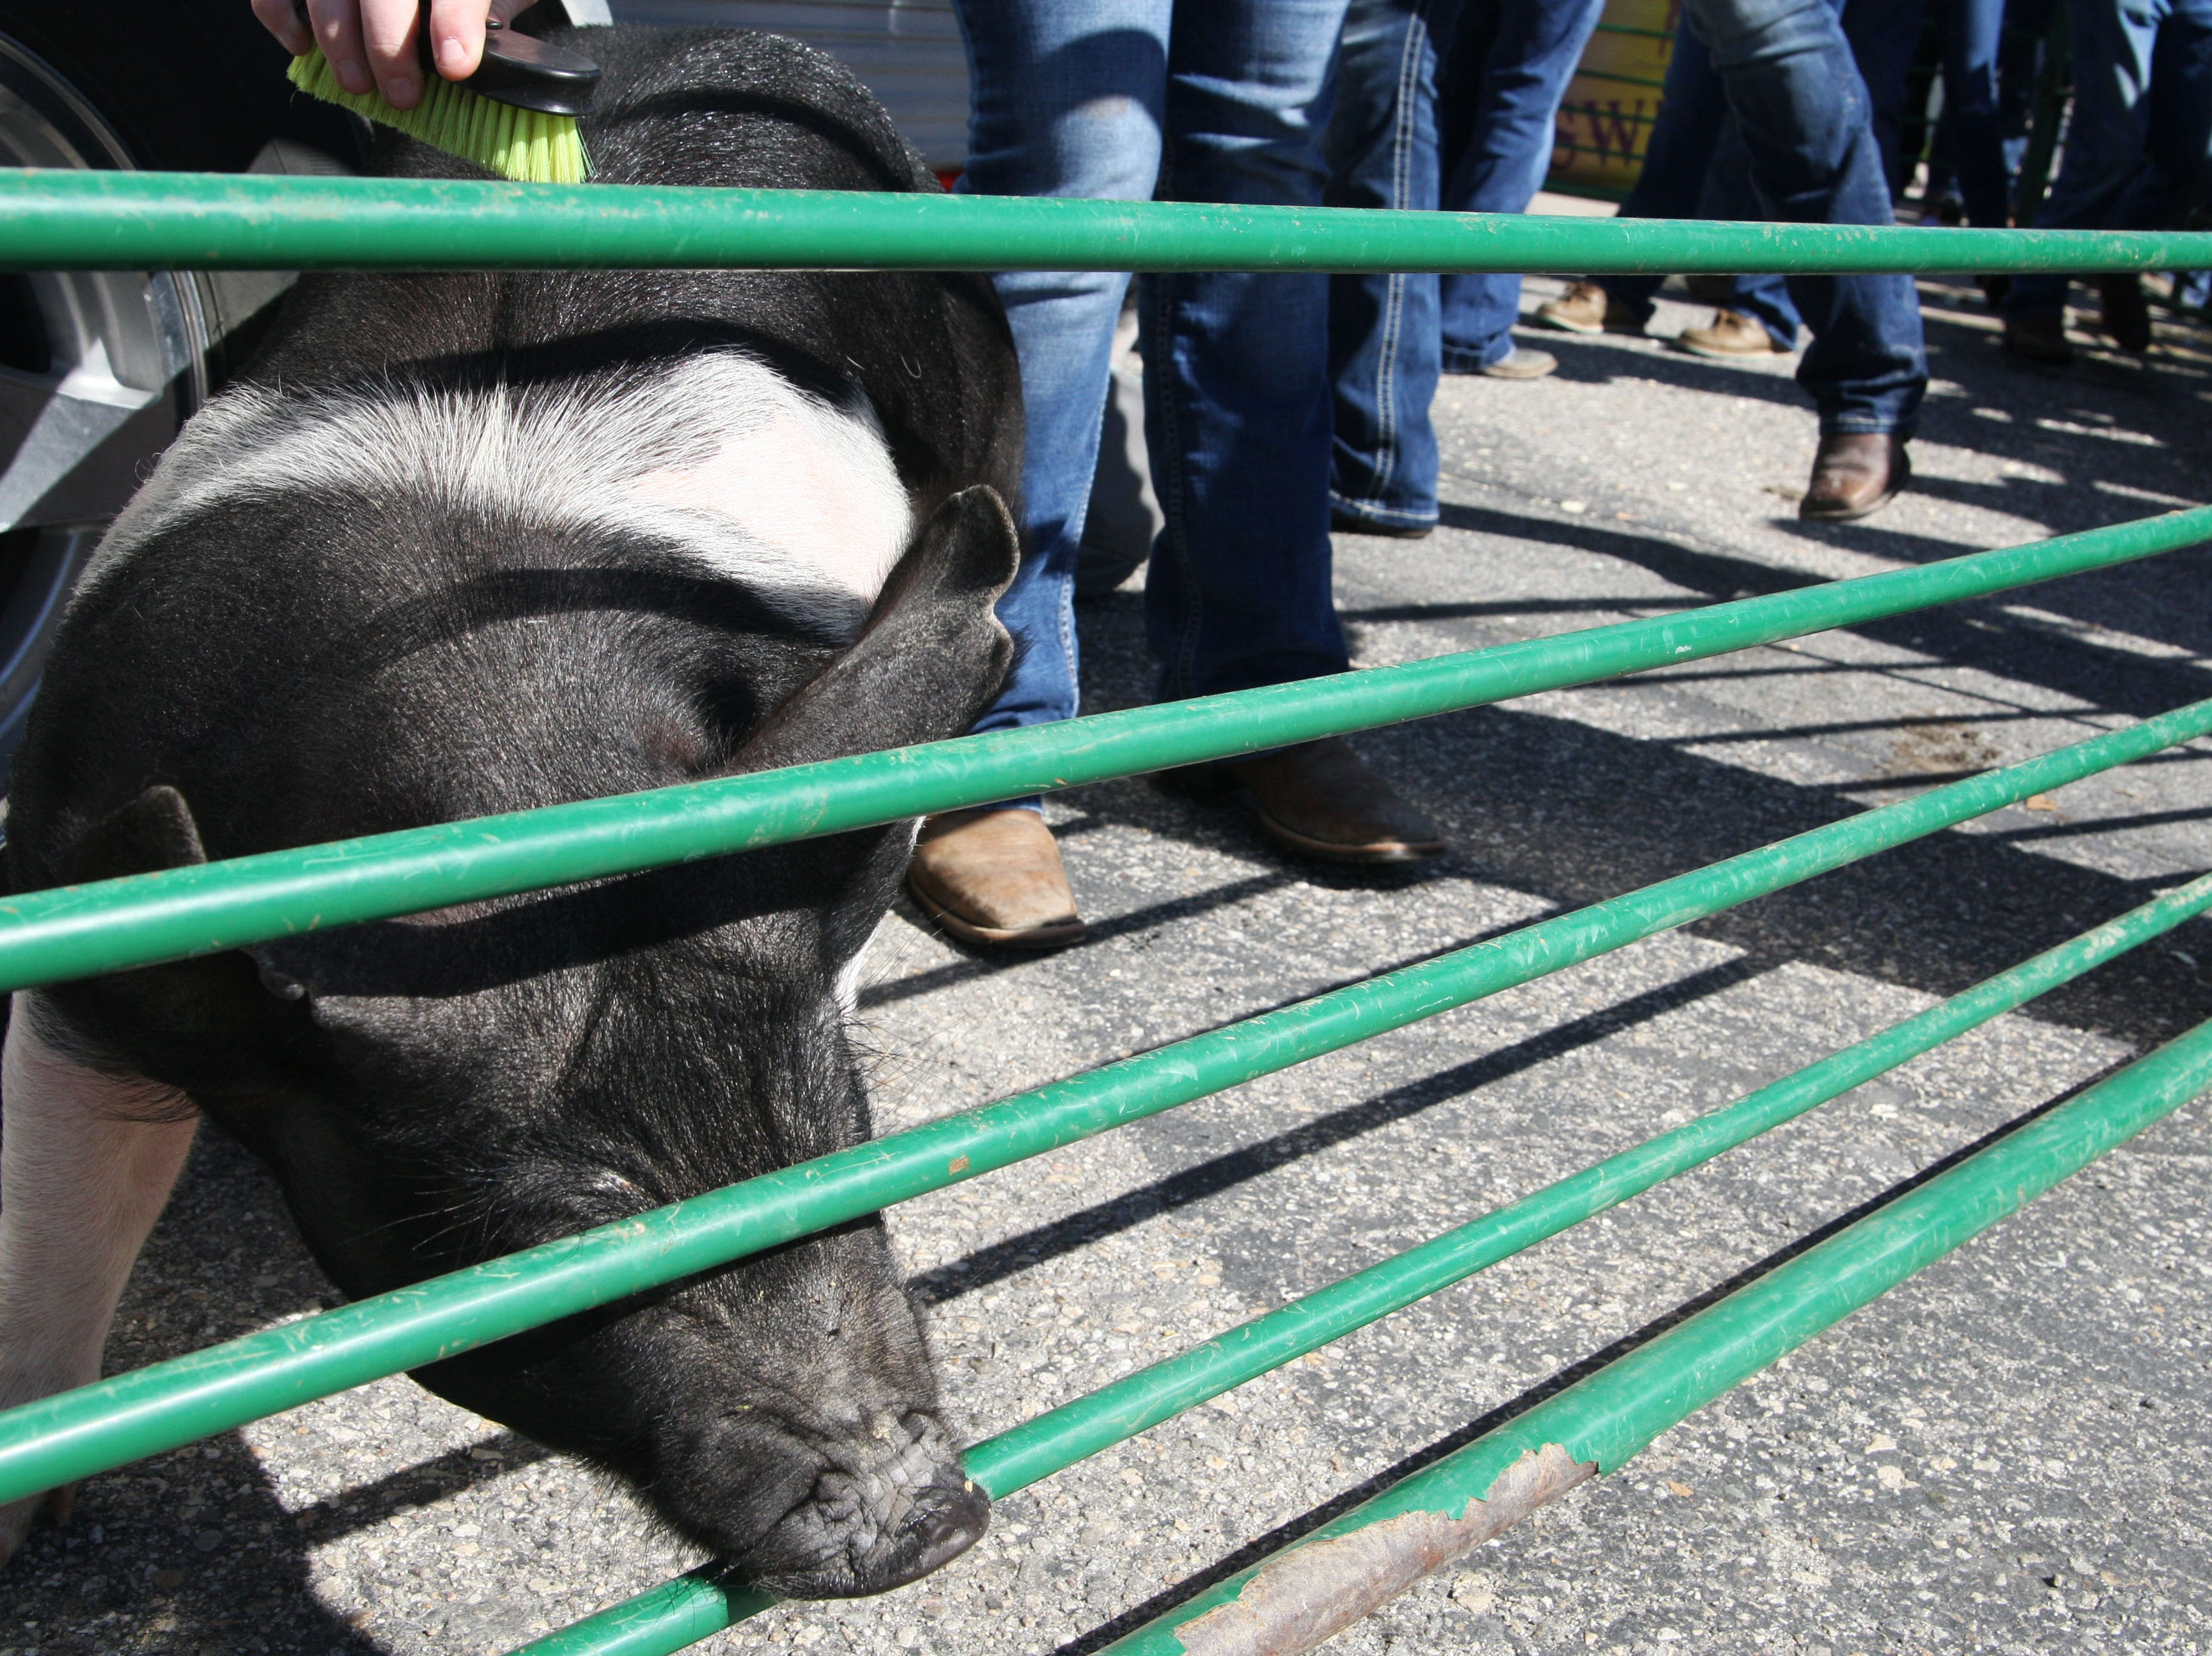 One of the pigs gets brushed as she tries to make a break for it.